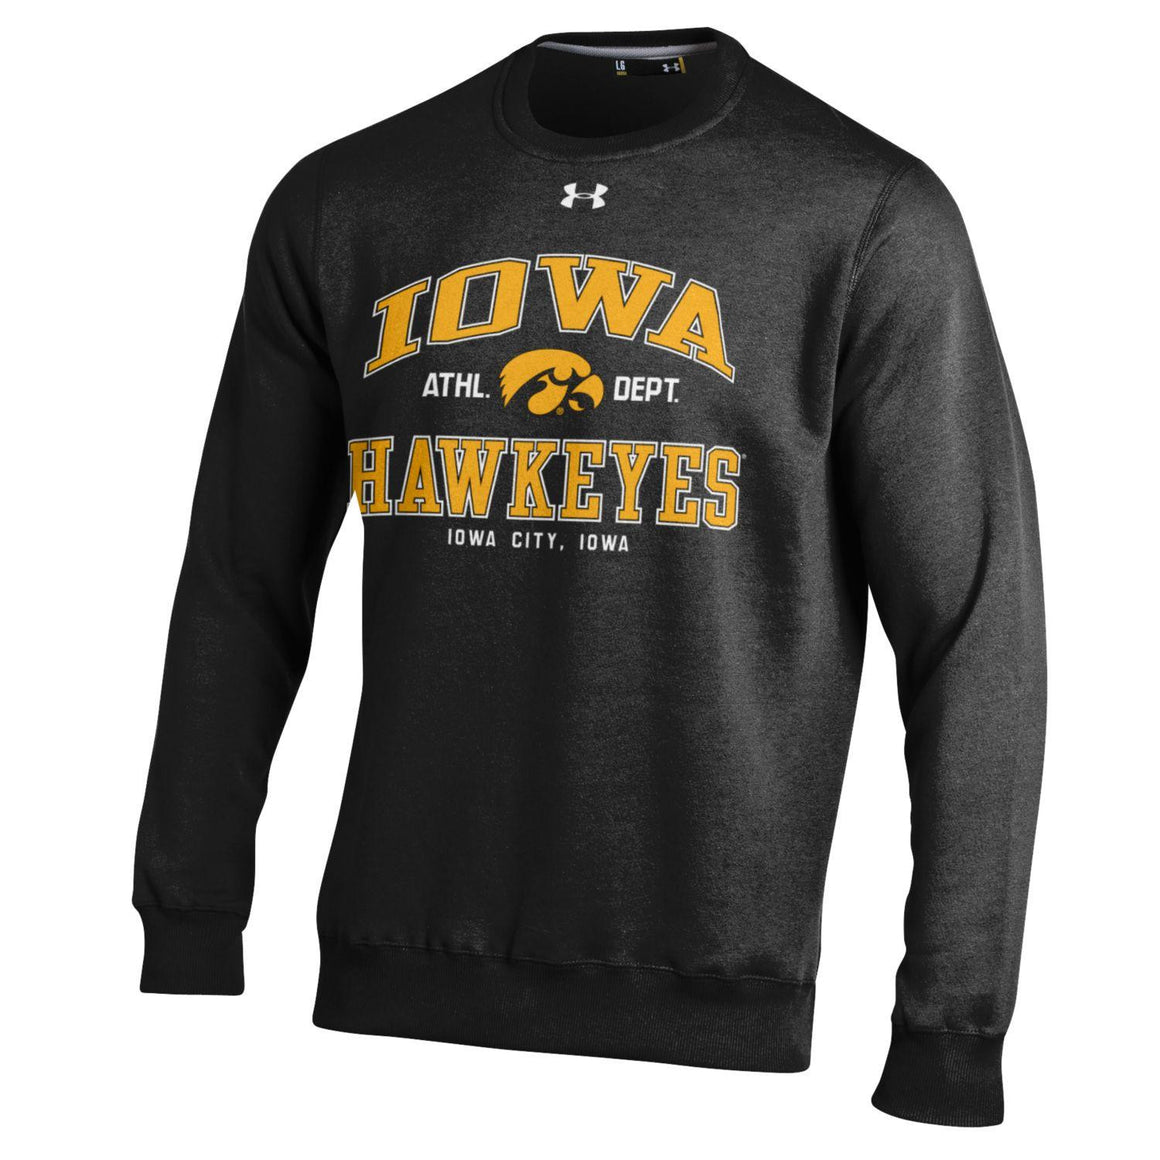 Iowa City Hawkeye Crewneck